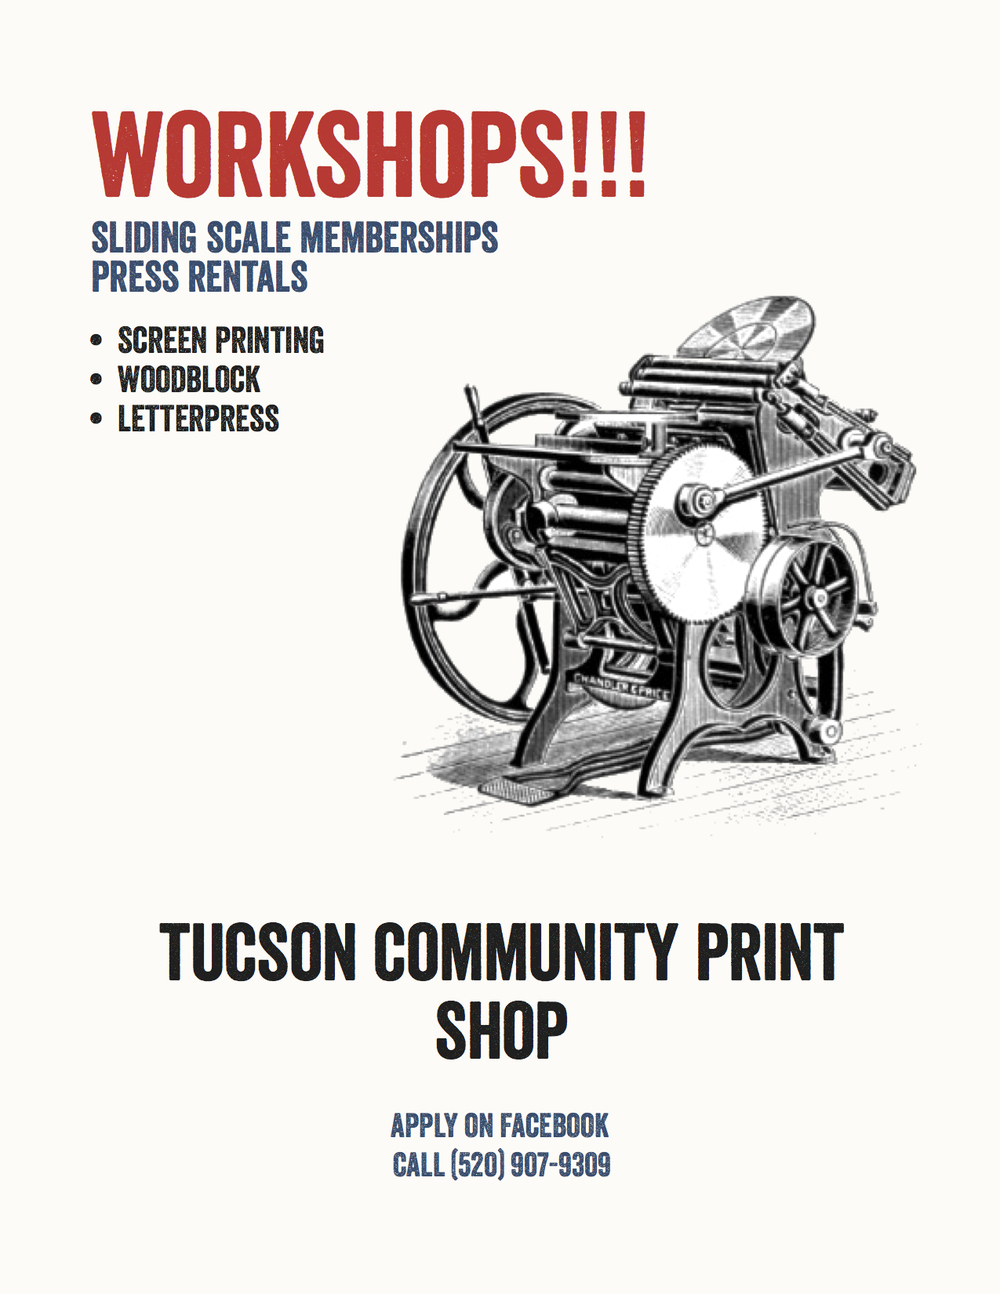 Flyer design I made for the Tucson Community Print Shop